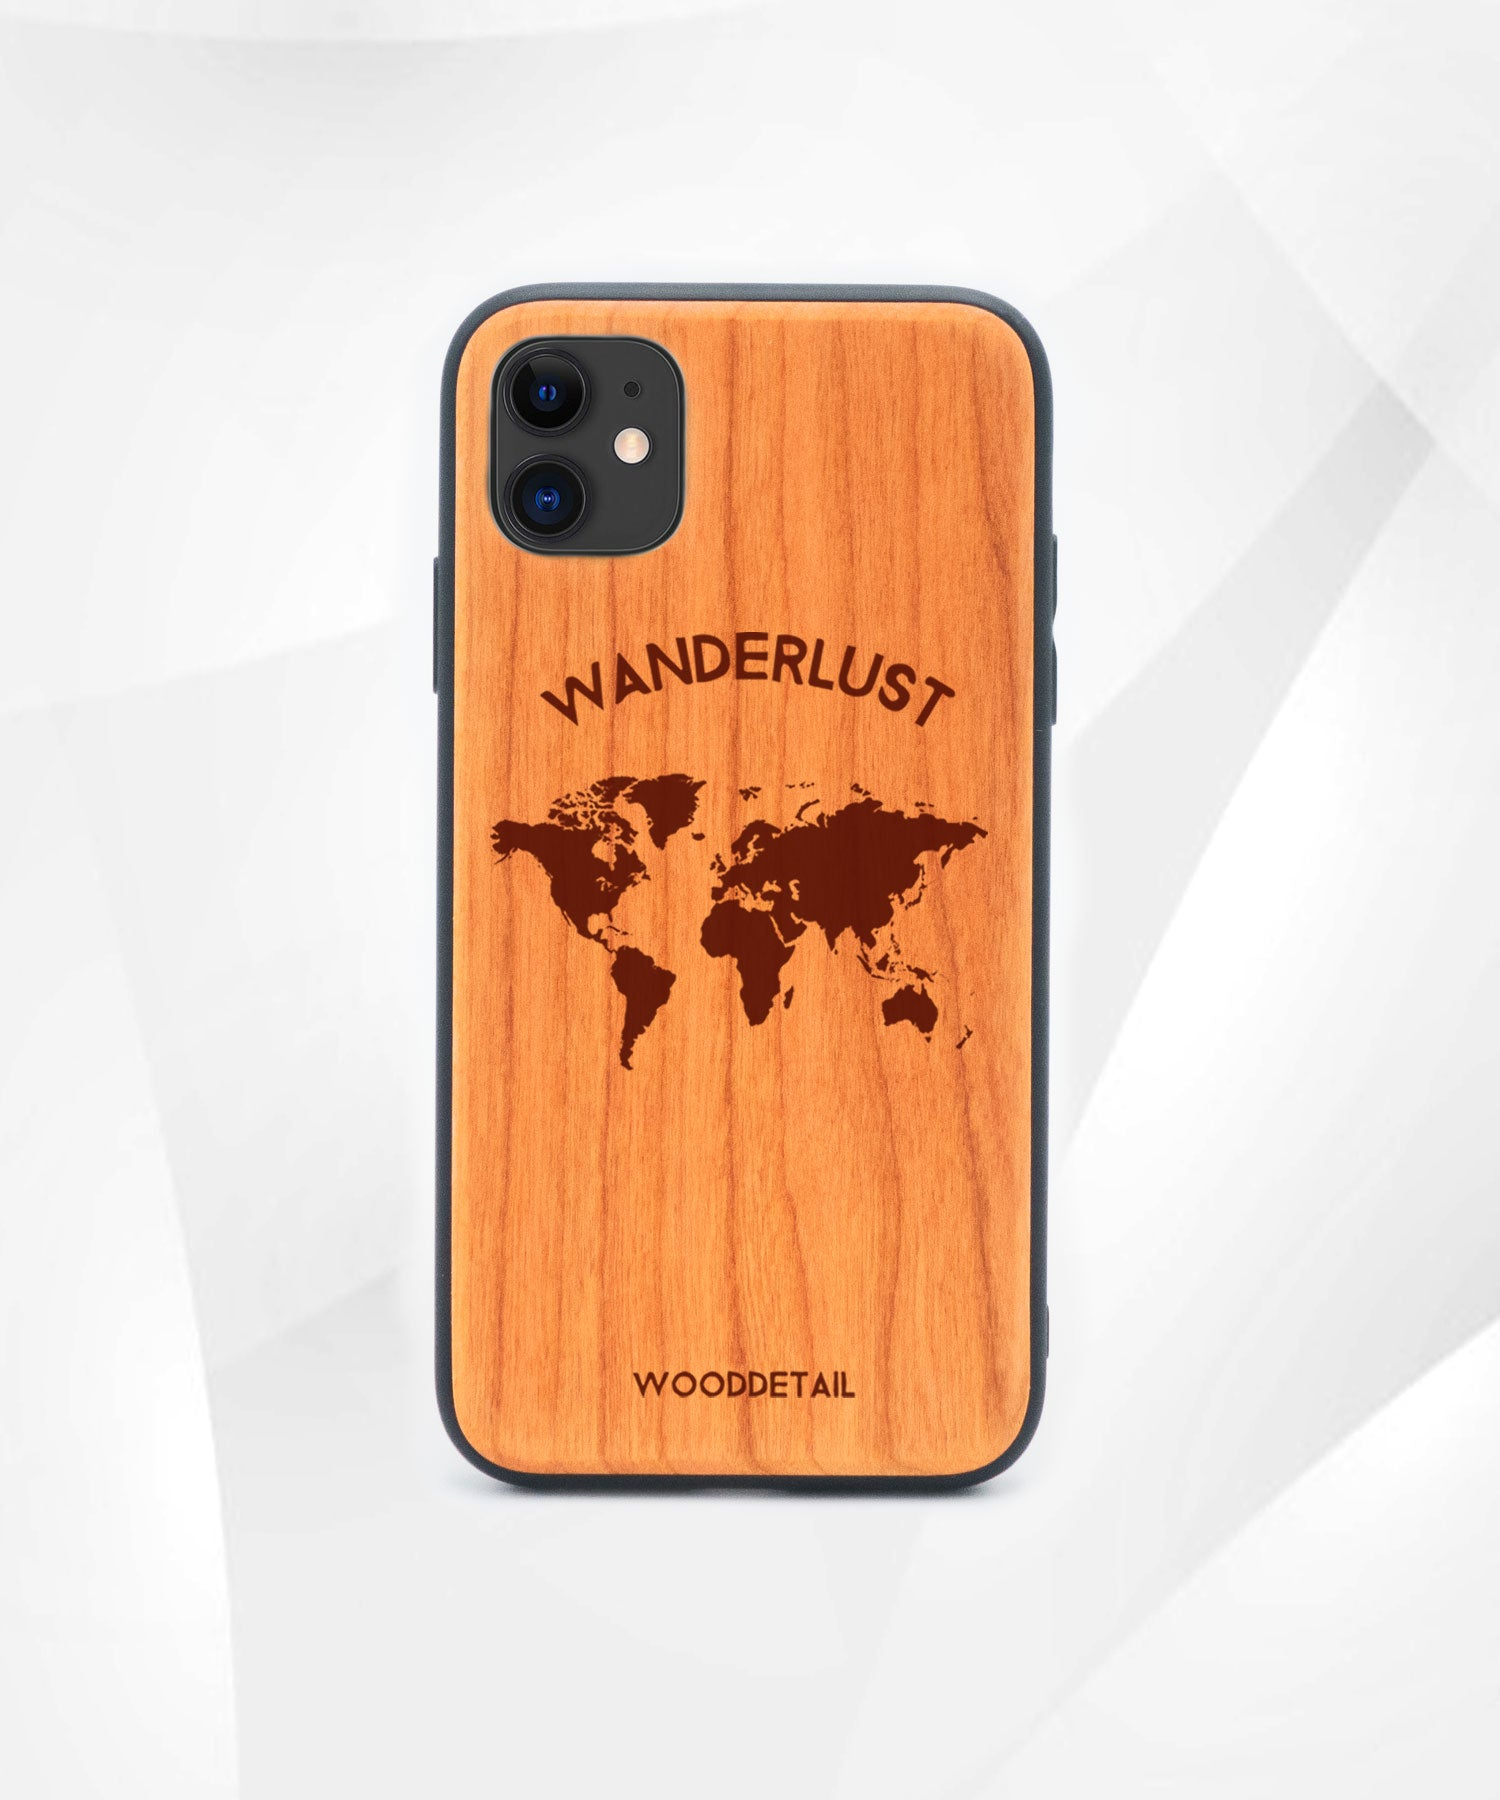 Wanderlust - iPhone 11